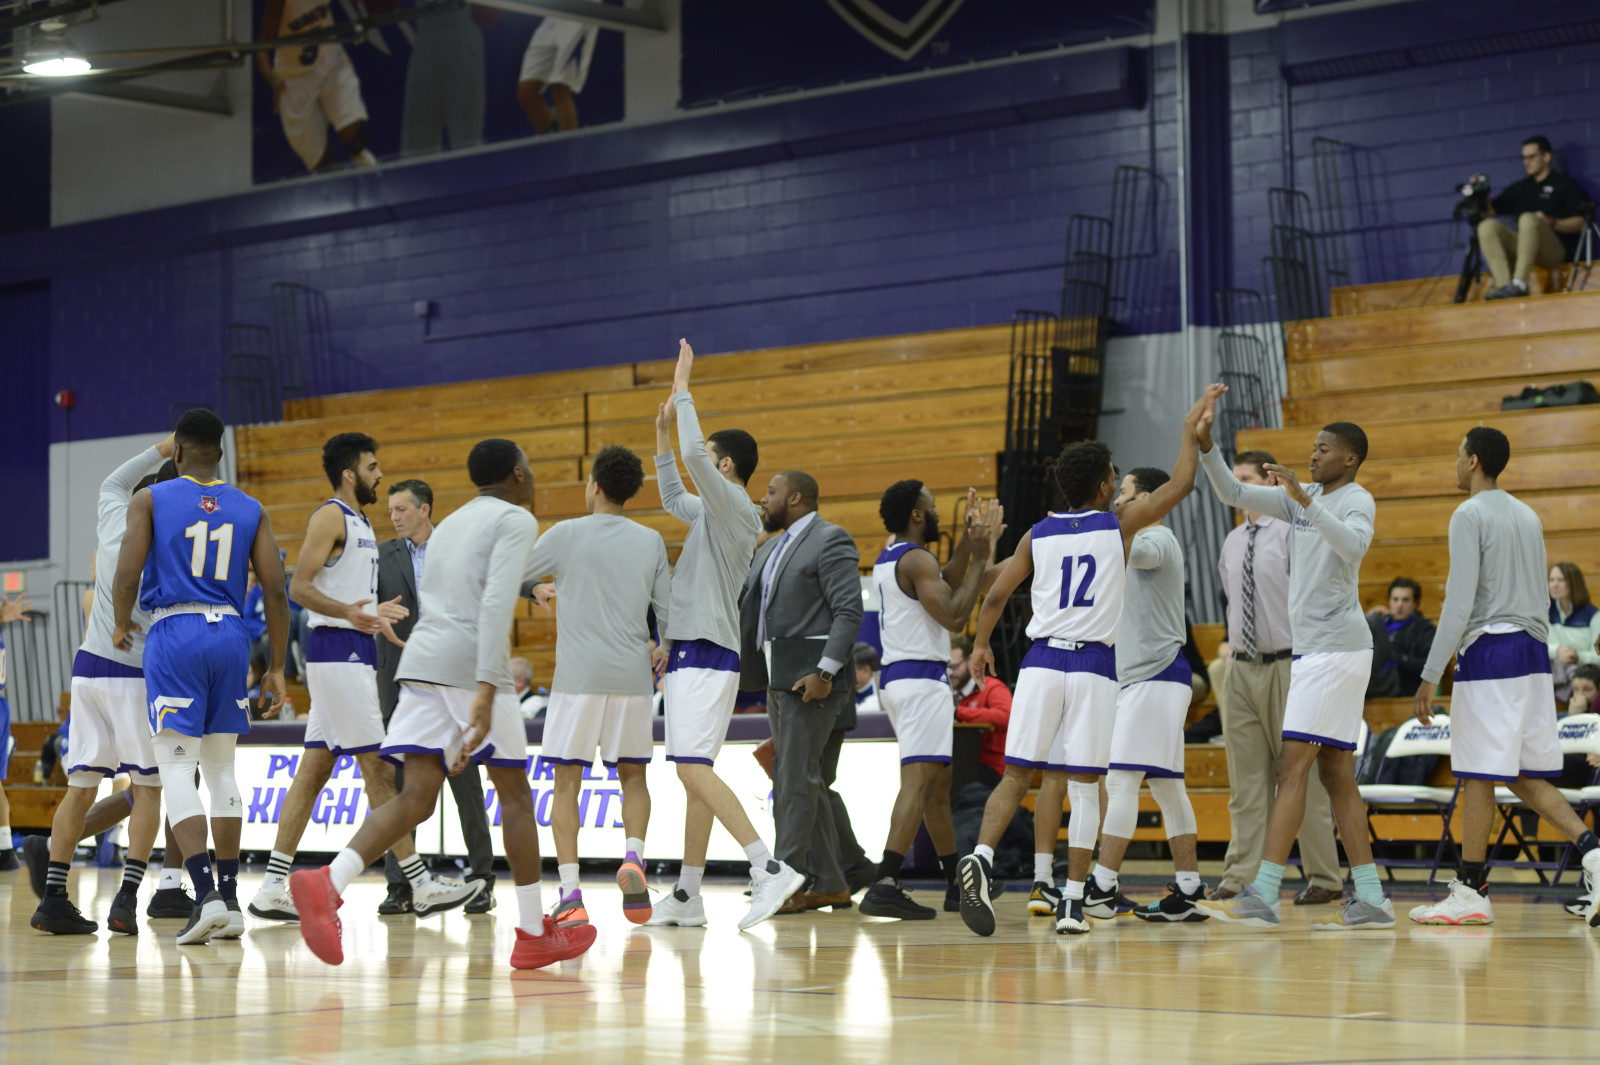 Total Team Effort Lifts Men's Basketball To Ninth Straight Triumph With A 103-69 Win Over LIU Post